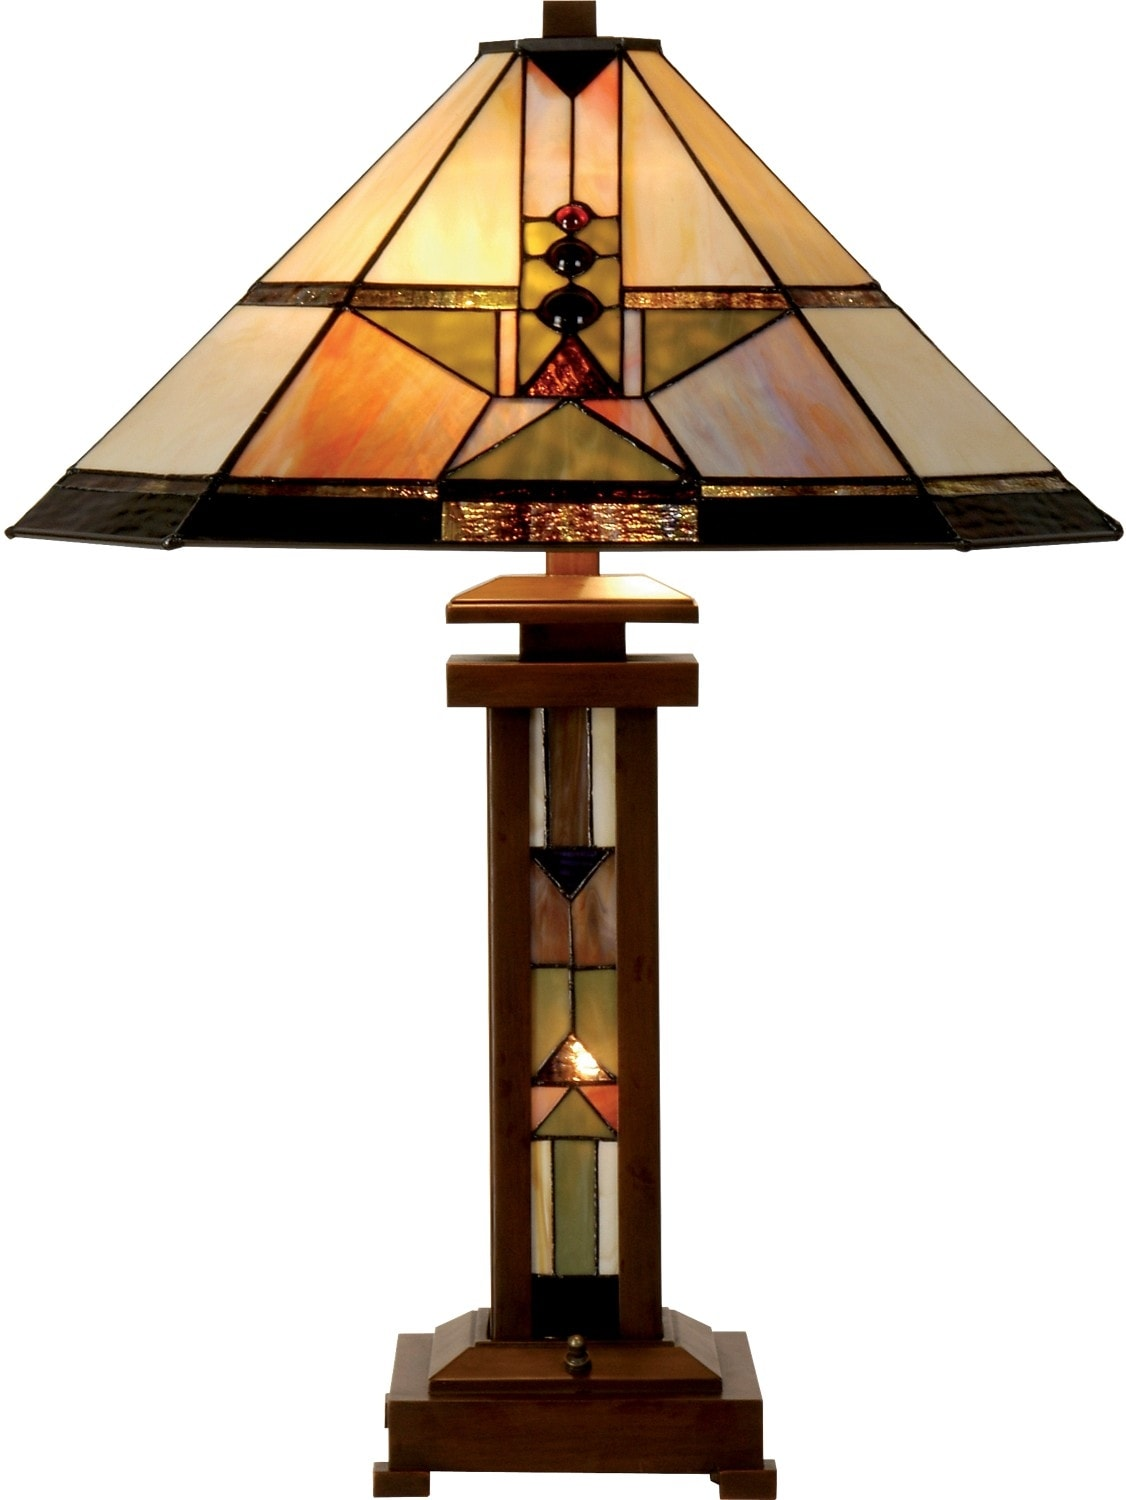 Drake Table Lamp with Stained Glass Shade